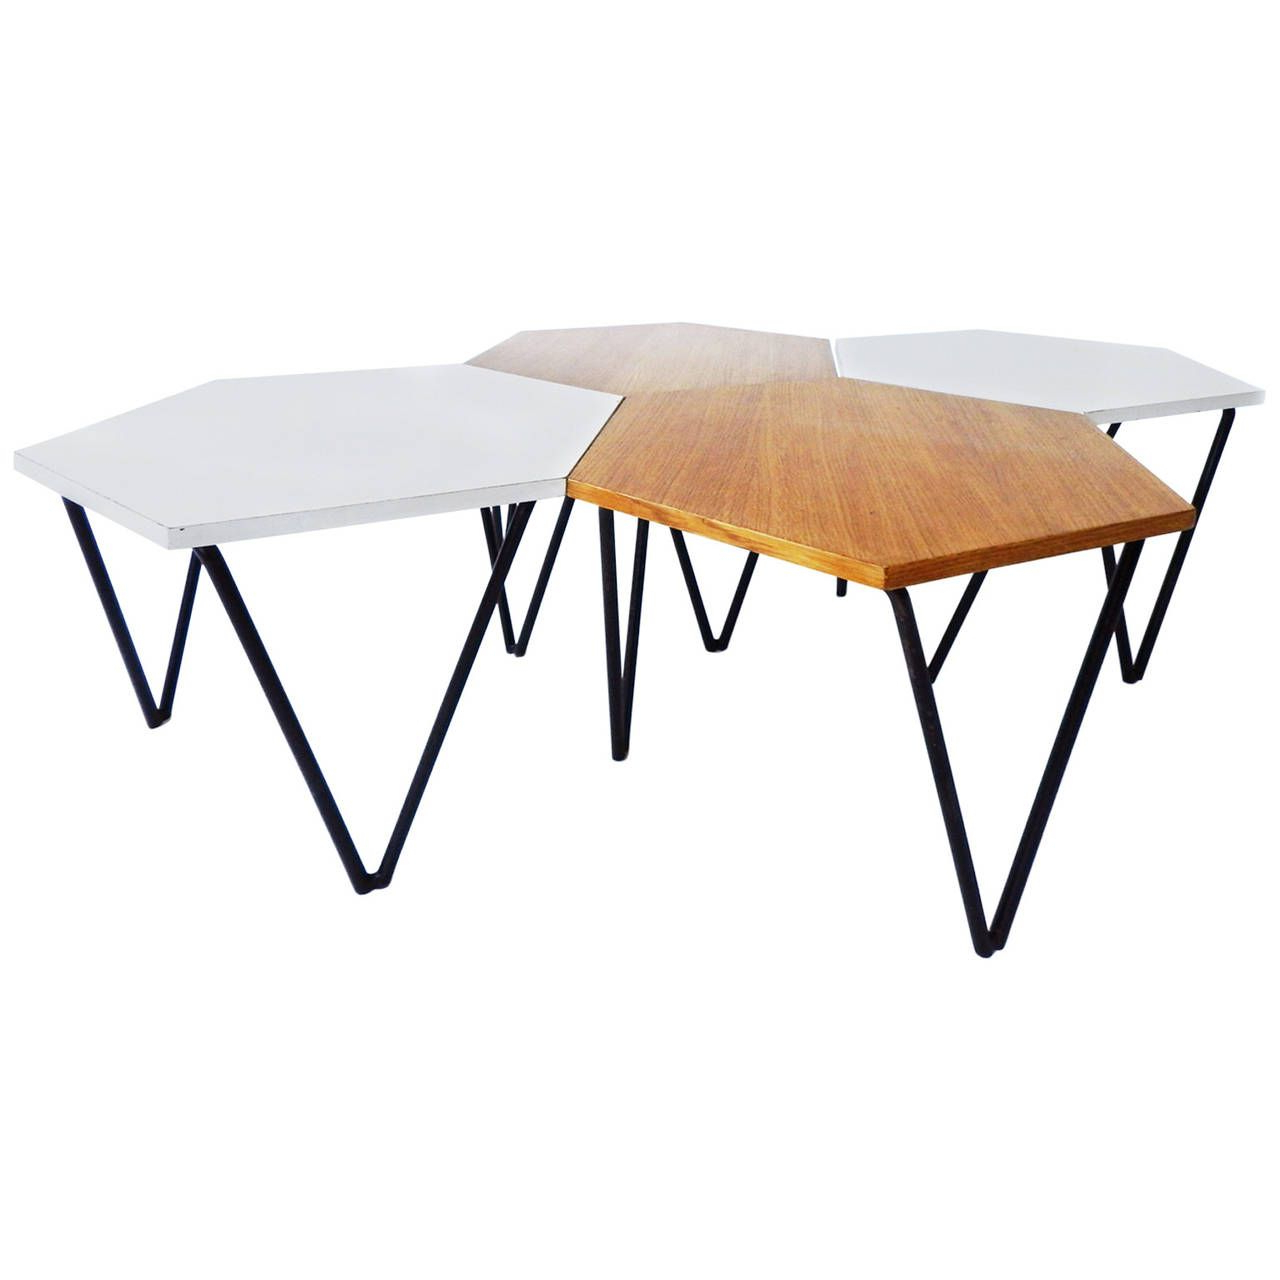 Most Up To Date Set Of 4 Gio Ponti Laminated And Wood Modular Coffee Tables For Isa For Modular Coffee Tables (View 12 of 20)